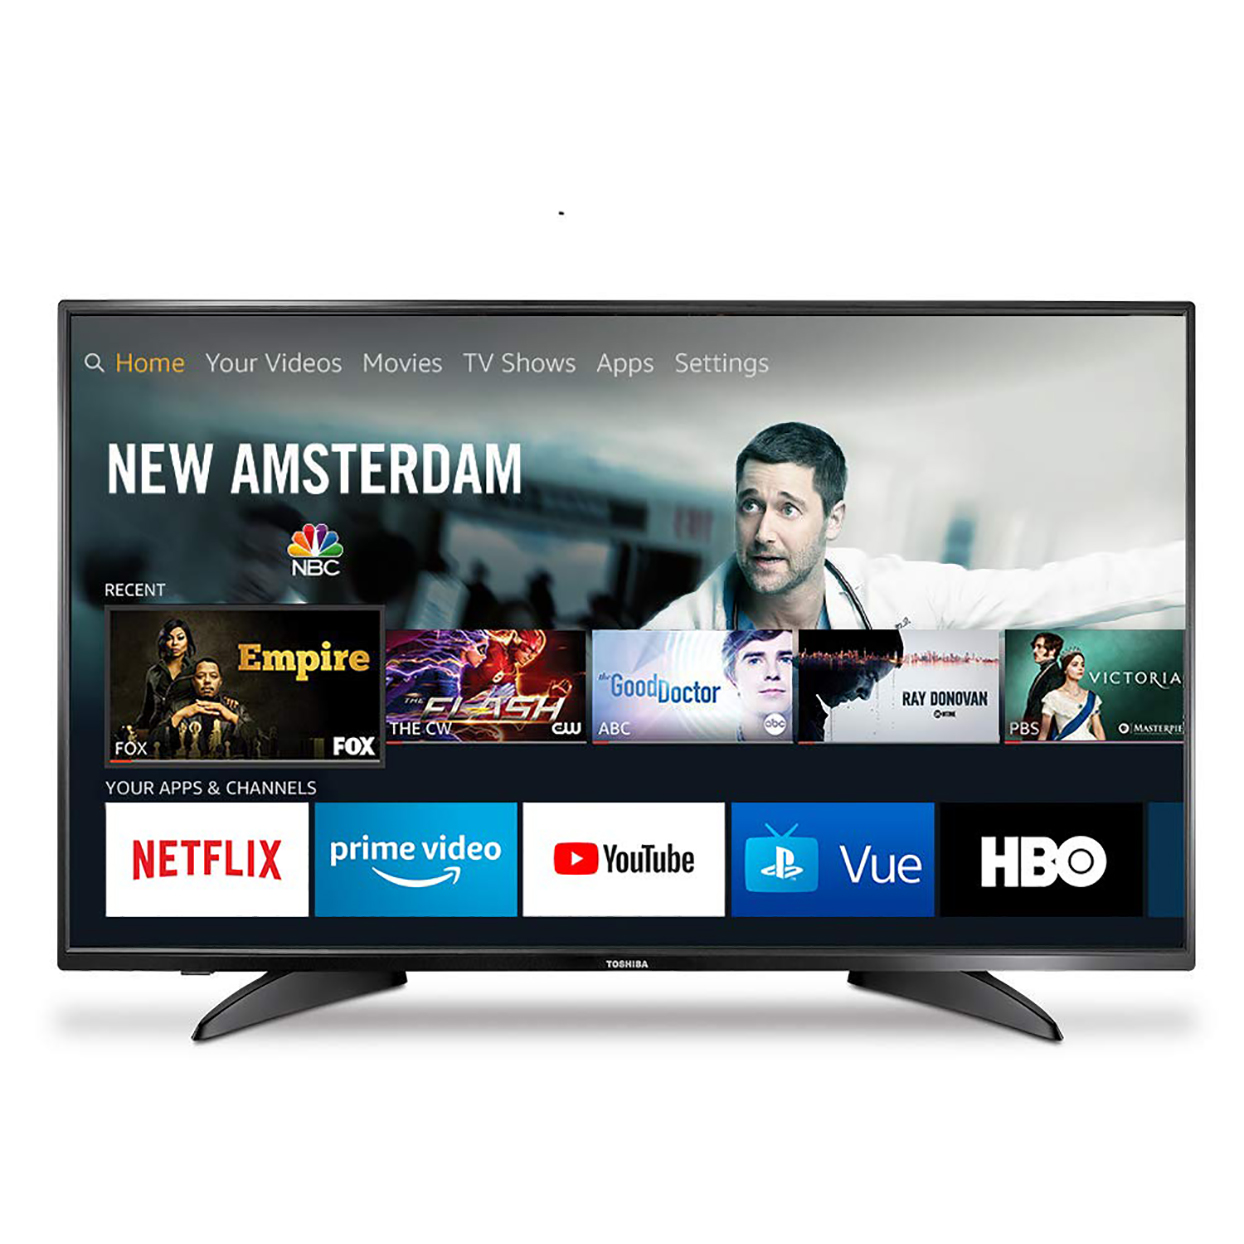 Toshiba 43LF421U19 43-inch 1080p Full HD Smart LED TV